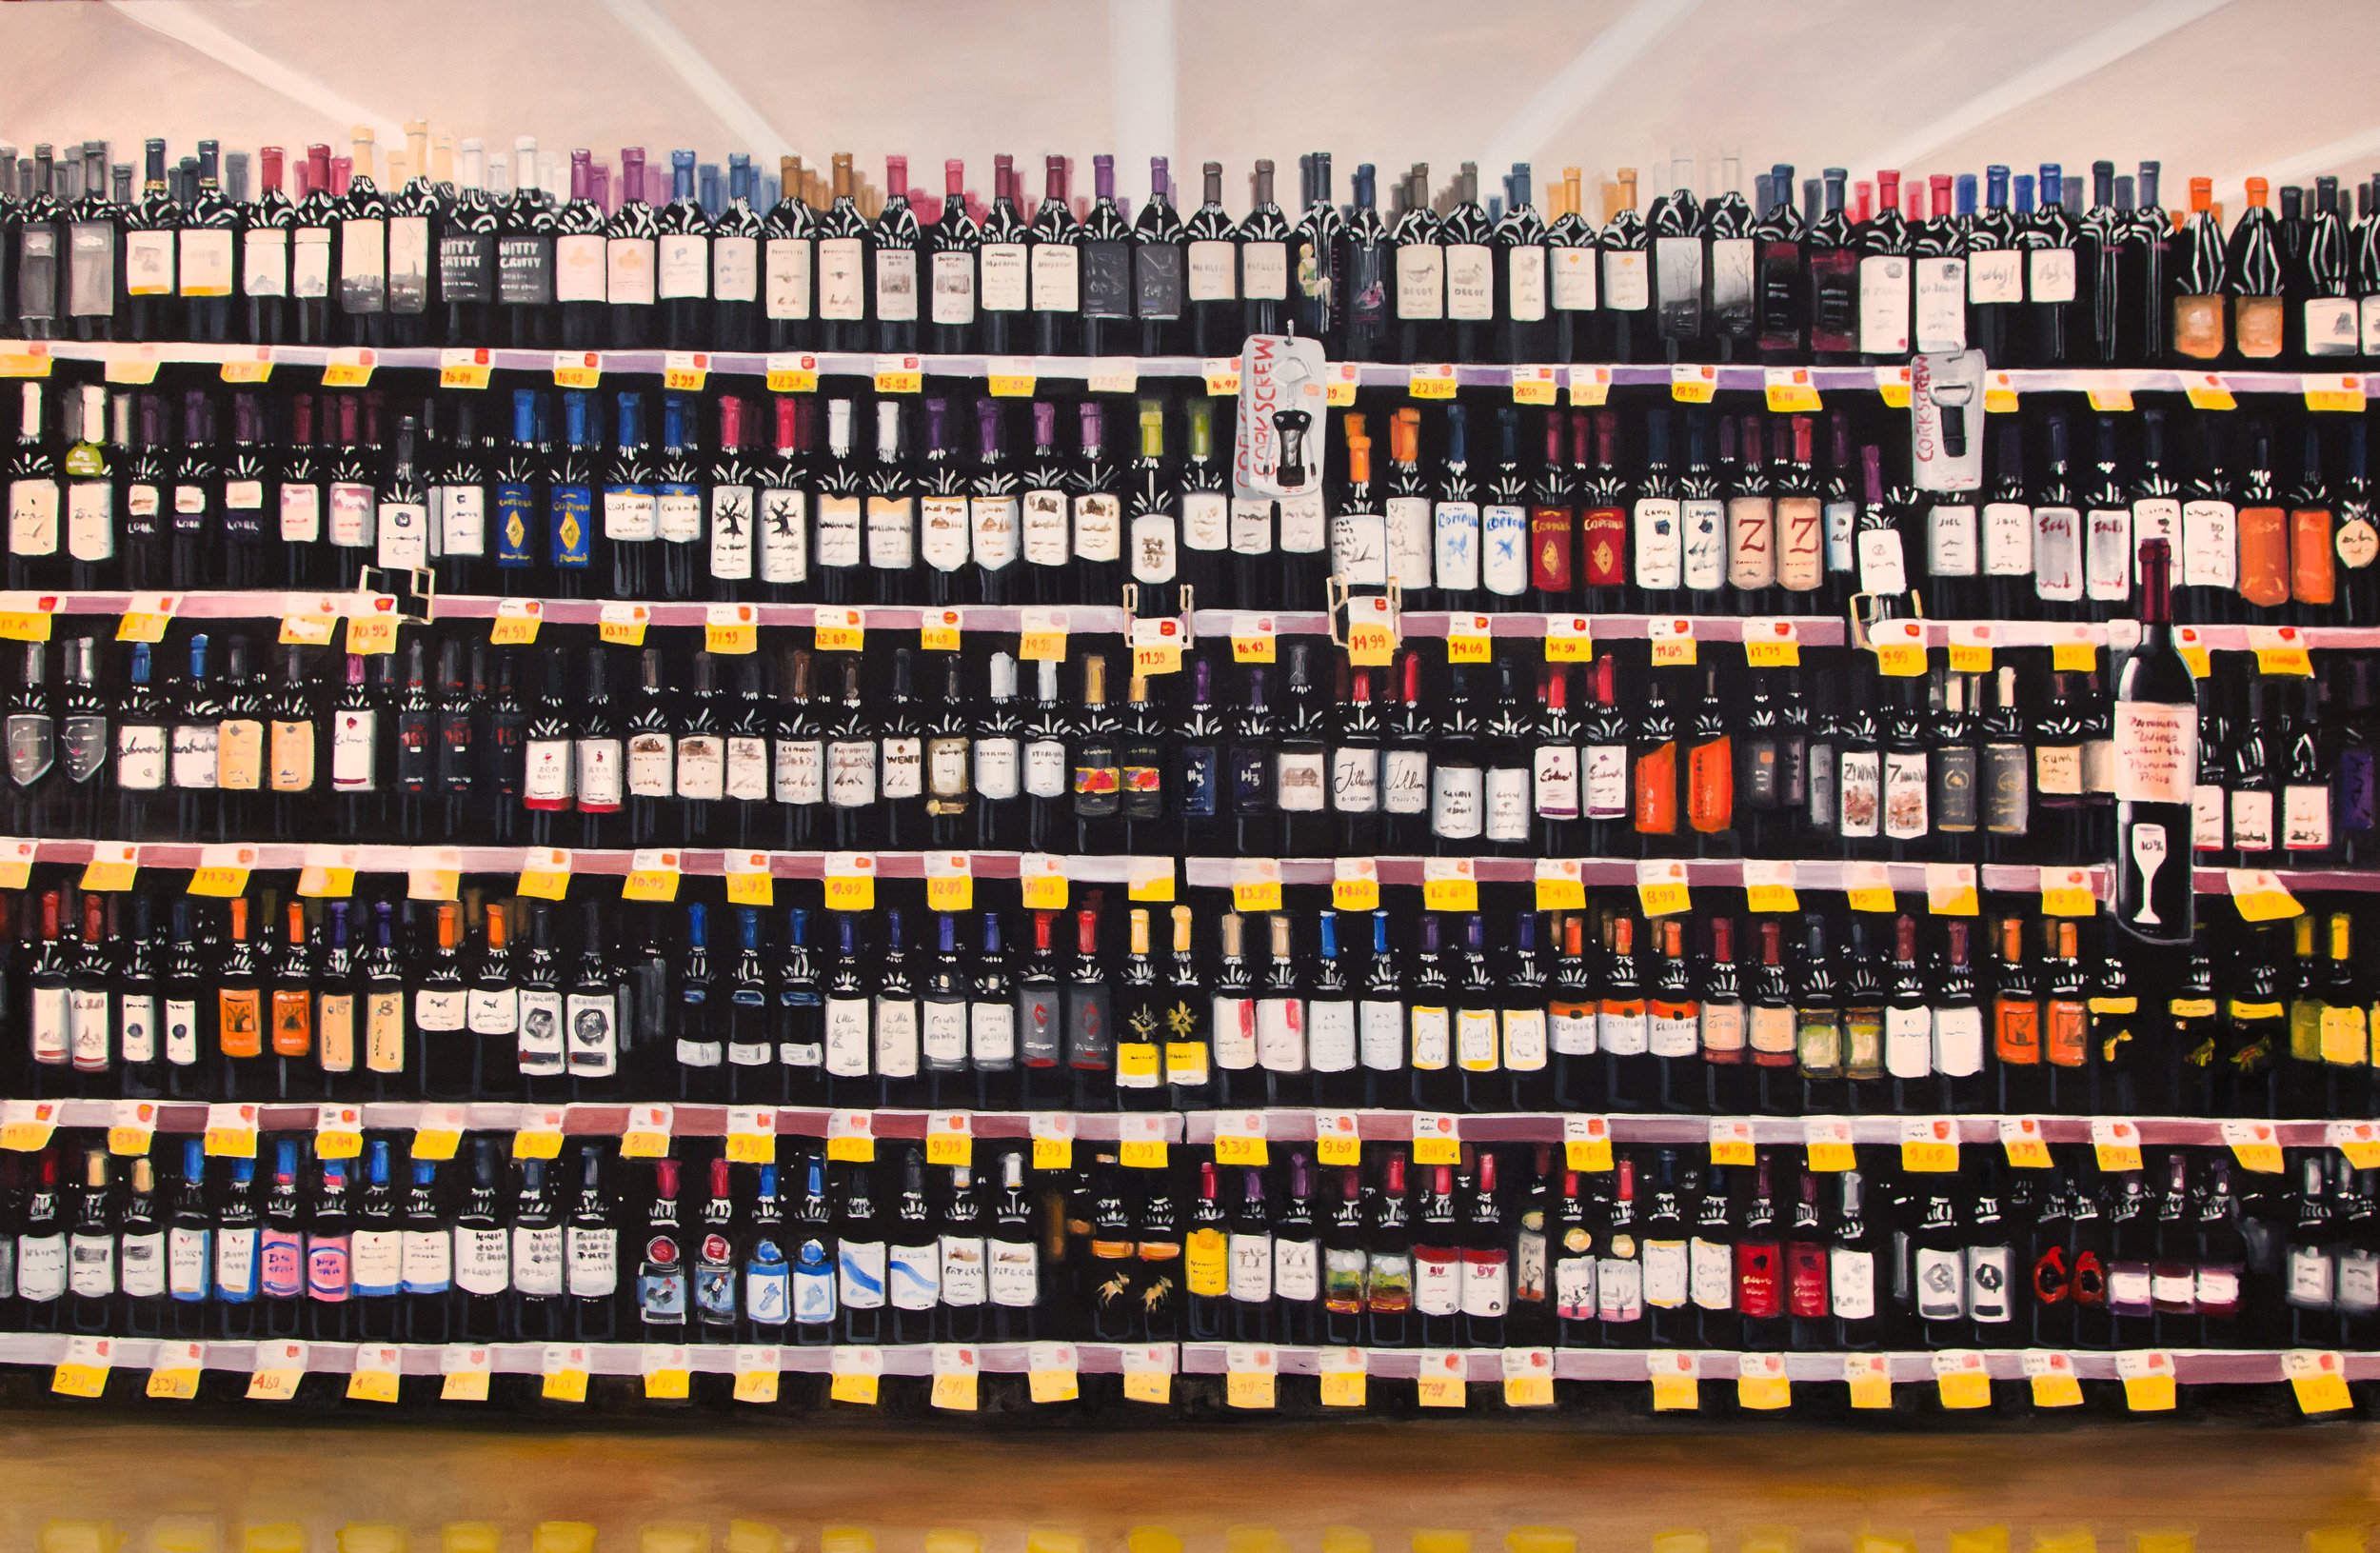 The Wine Aisle (Sold)